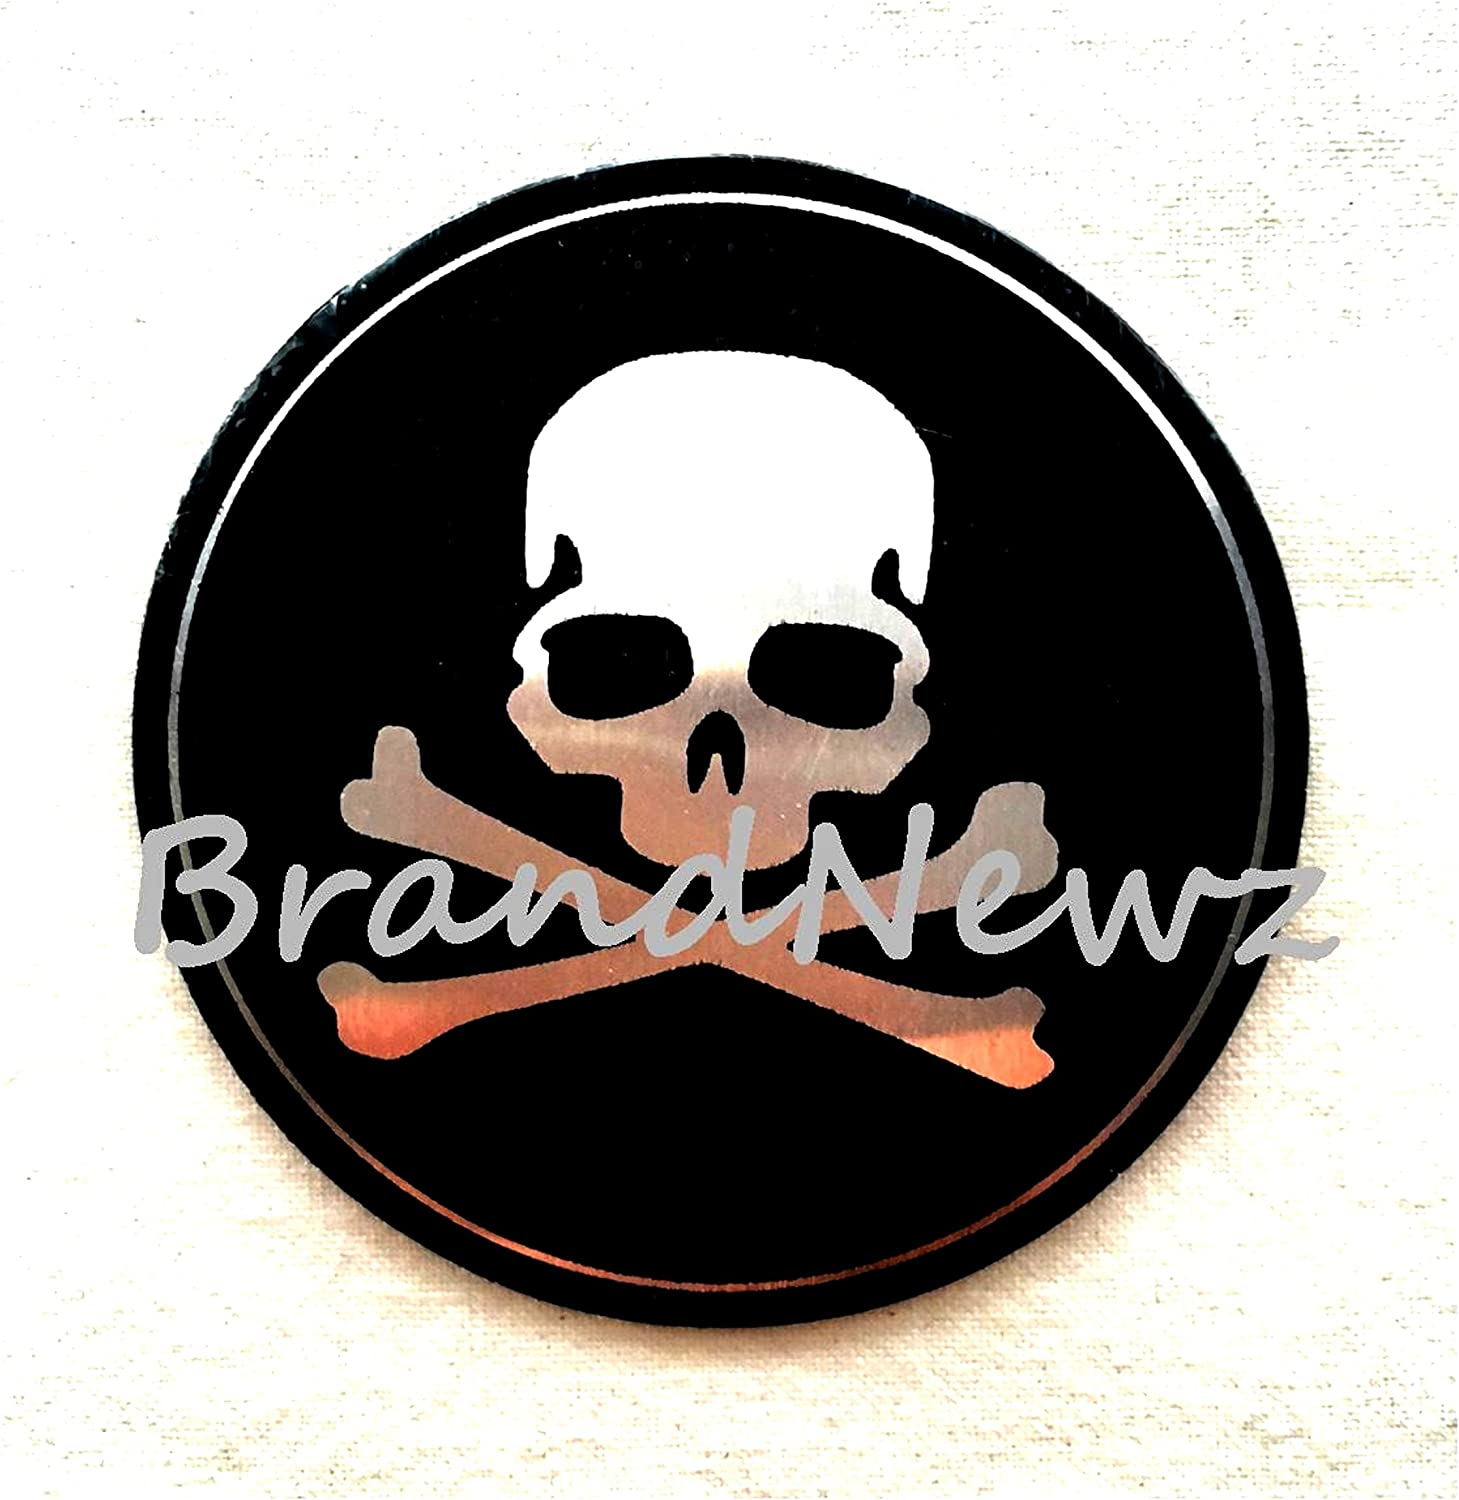 INDEPENDENT MANUFACTURE SKULL WITH CROSS BONE EMBLEM WHEEL CENTER CAP STICKERS LOGO BADGE WHEEL TRIM 65 MM DOME SET OF 4